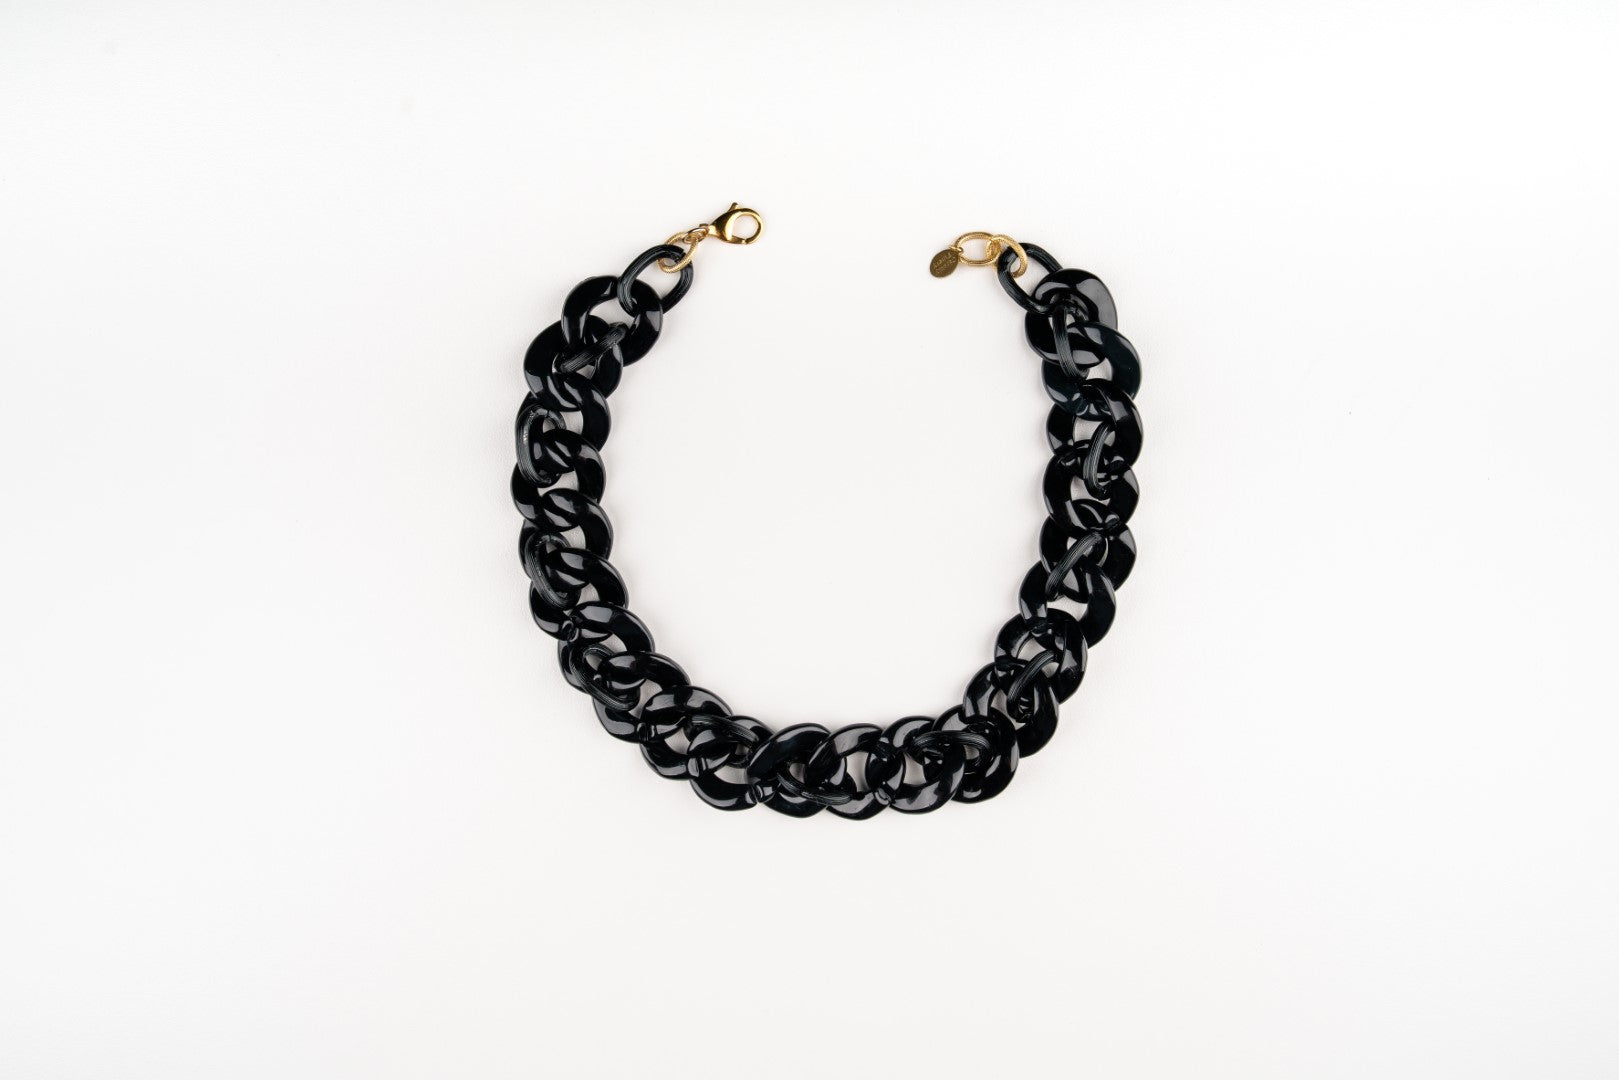 a Carolily Finery statement necklace made from black acrylic curb chain